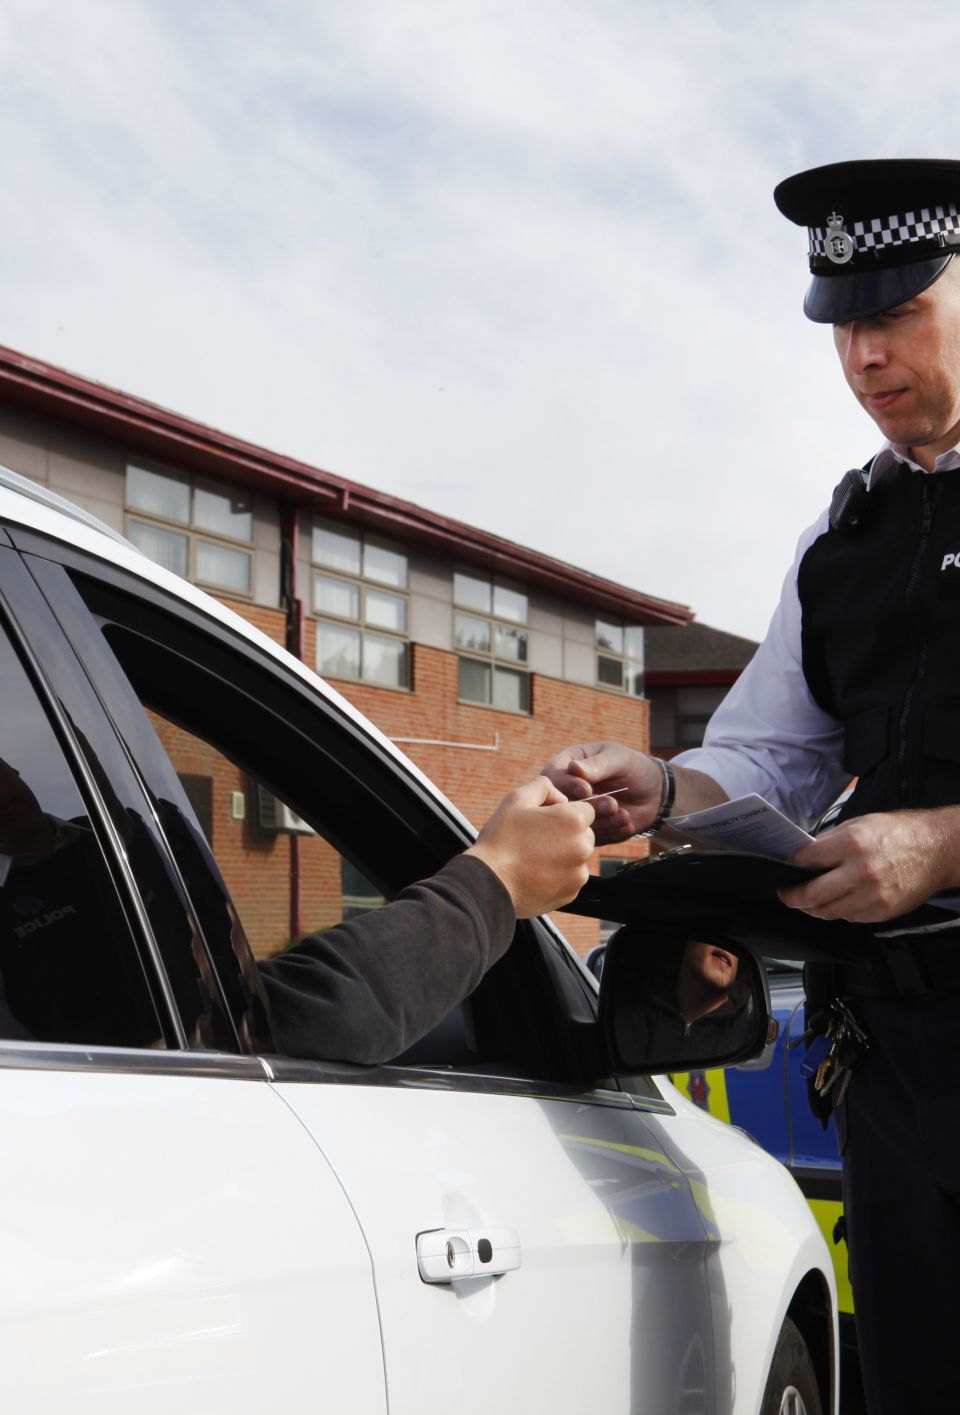 Checking a drivers id in Britain